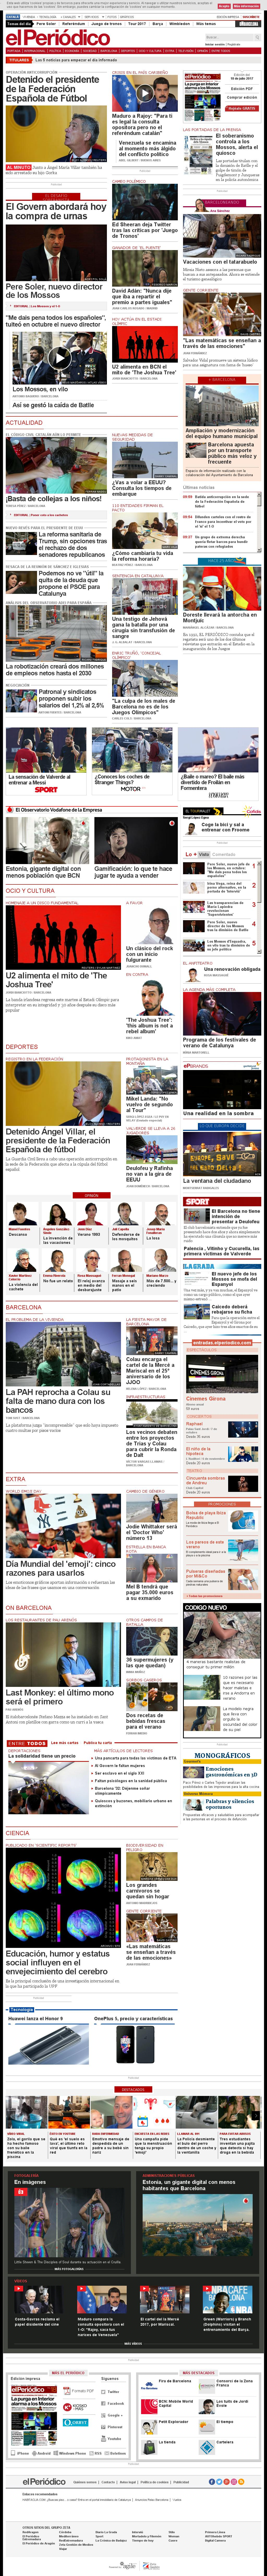 El Periodico at Tuesday July 18, 2017, 8:15 a.m. UTC